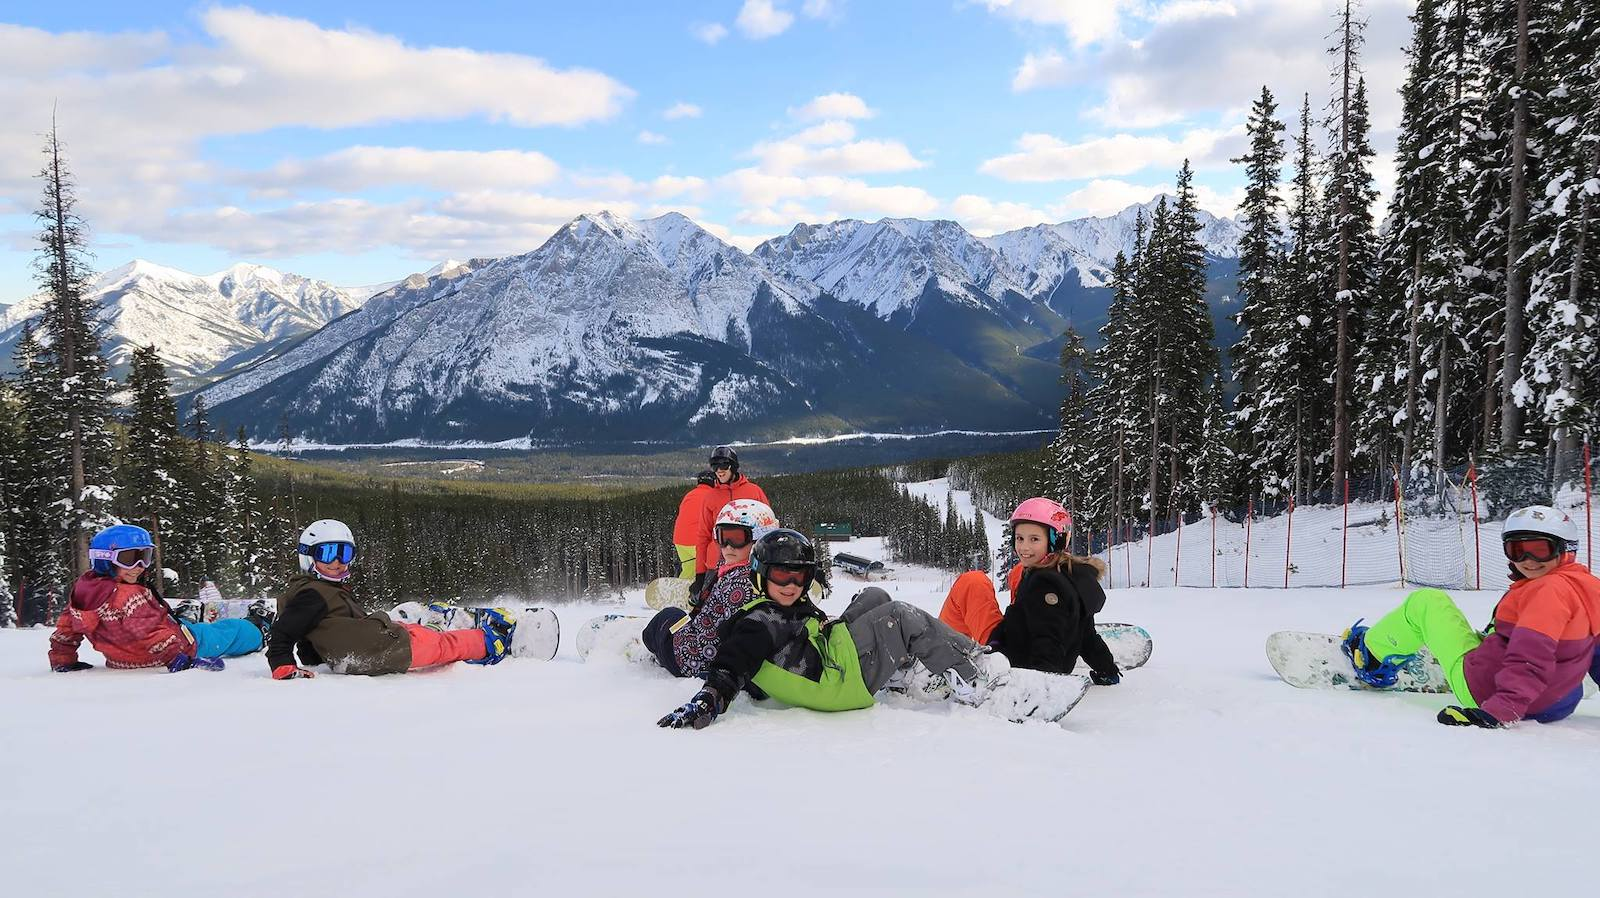 Image of seven snowboarders resting on the slopes at Nakiska Ski Area in Canada